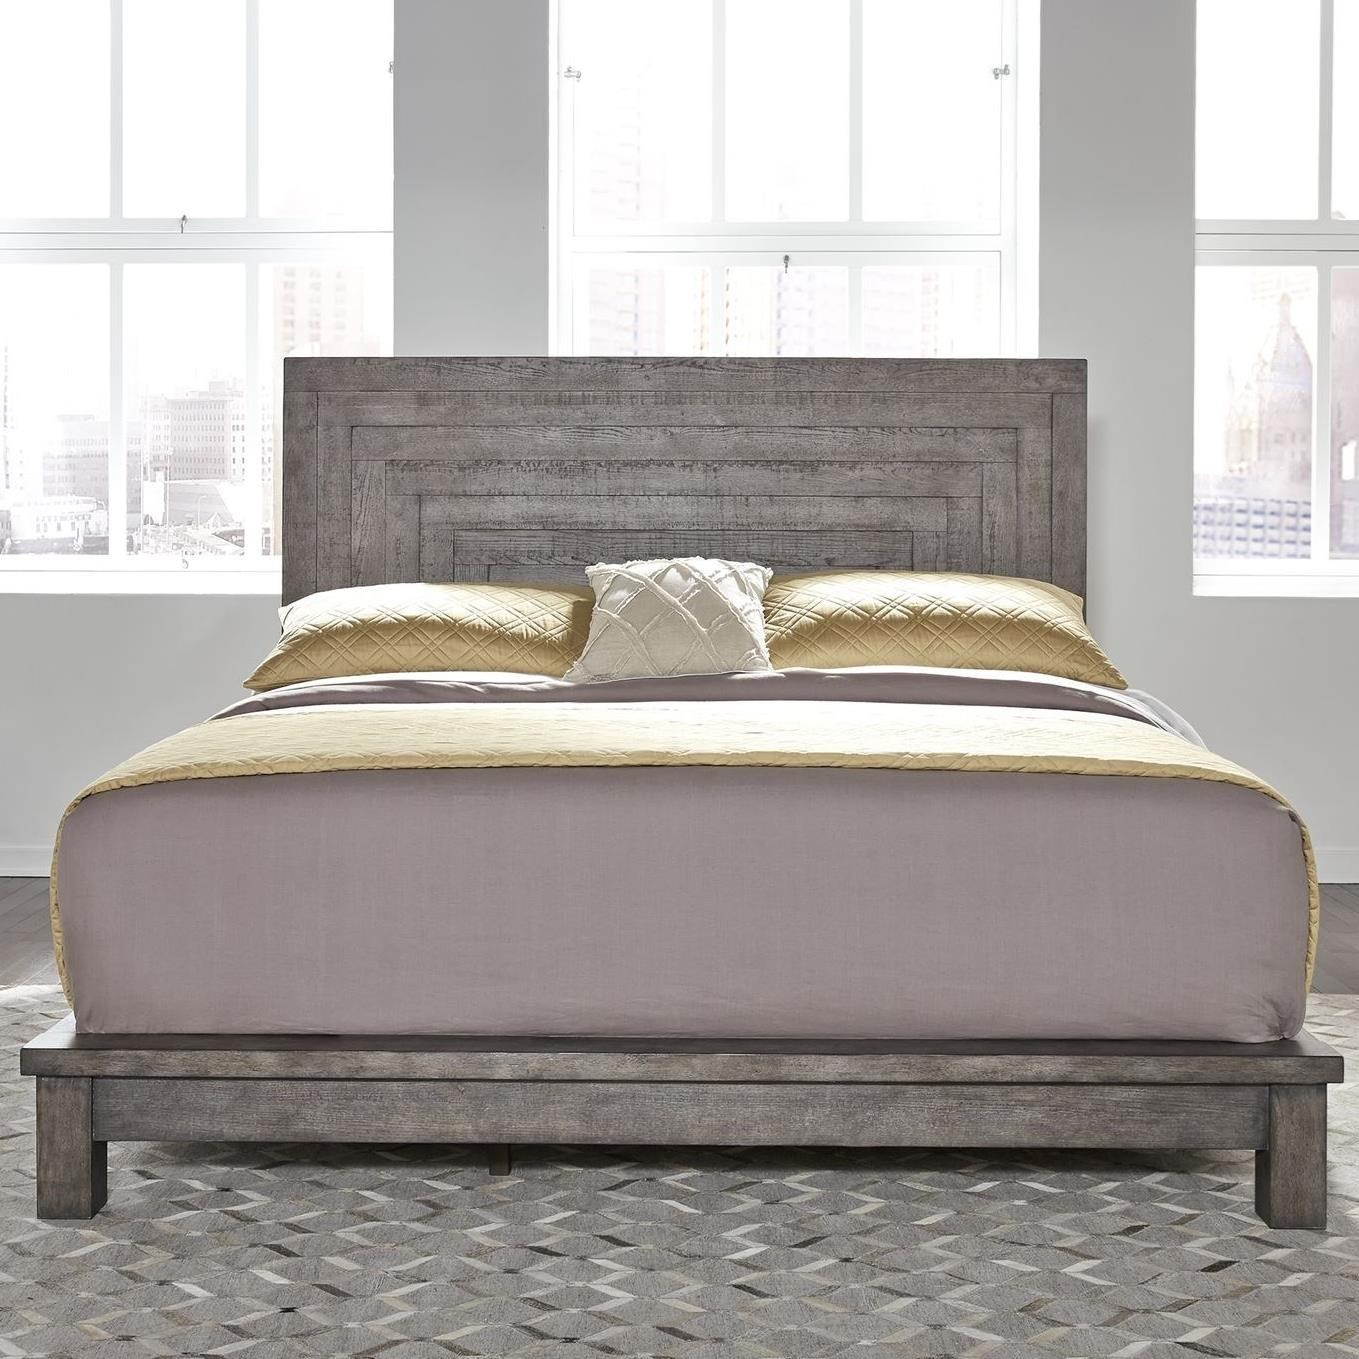 Picture of: Liberty Furniture Modern Farmhouse 406 Br Qpl Contemporary Queen Platform Bed Sam Levitz Furniture Platform Beds Low Profile Beds